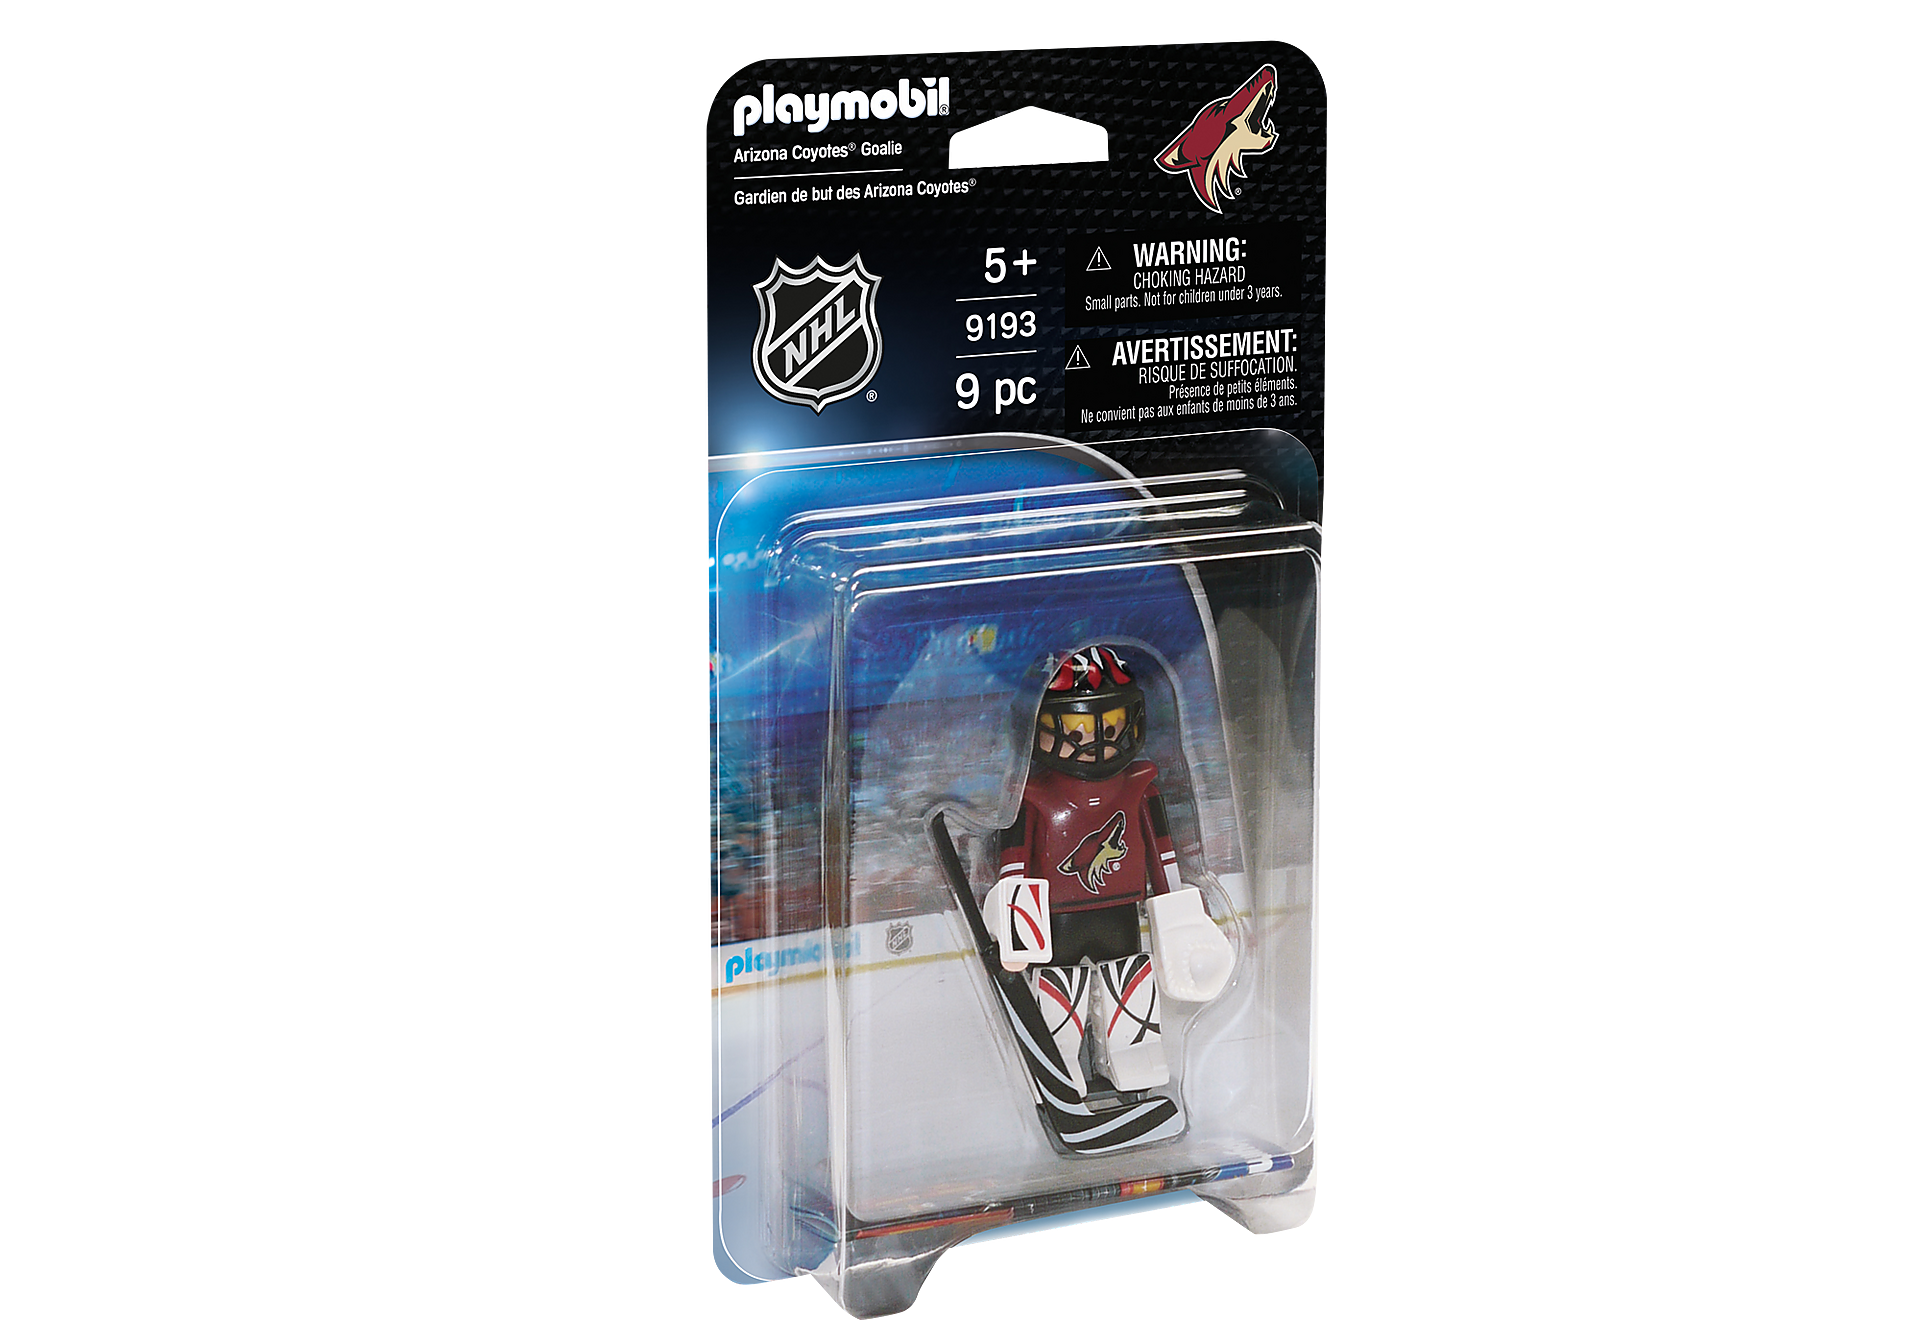 http://media.playmobil.com/i/playmobil/9193_product_box_front/NHL™ Arizona Coyotes™ Goalie